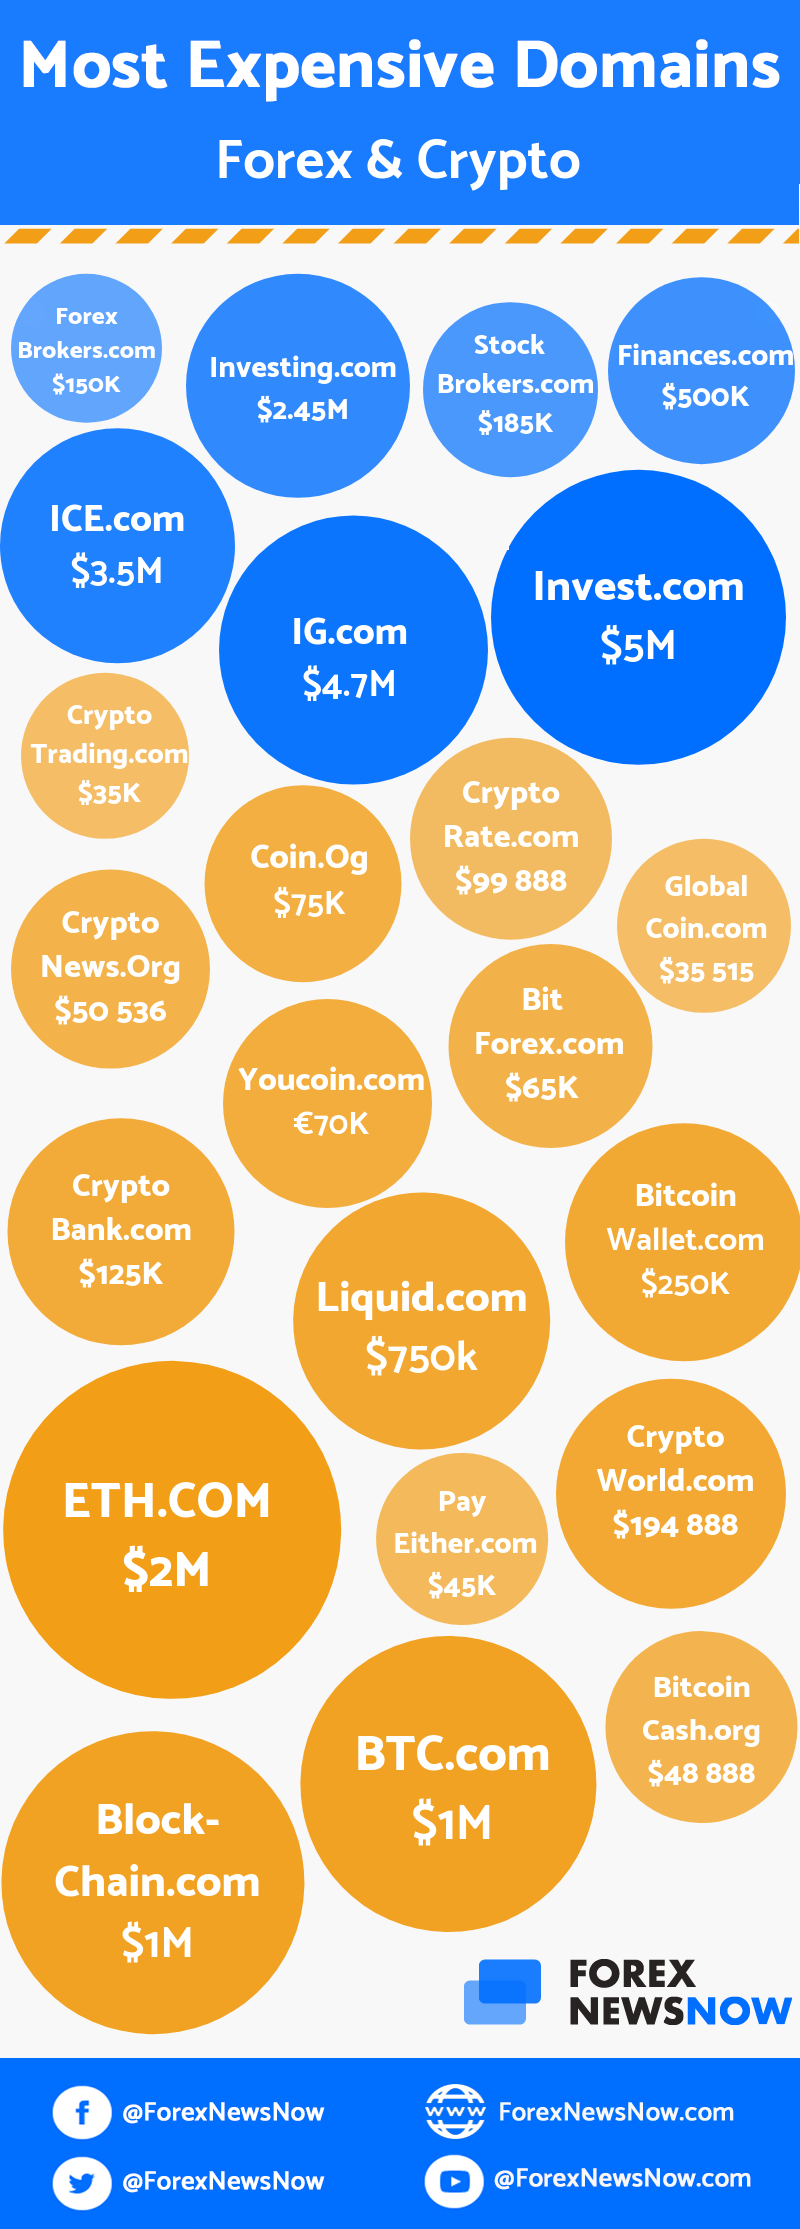 most-expensive-forex-crypto-domains